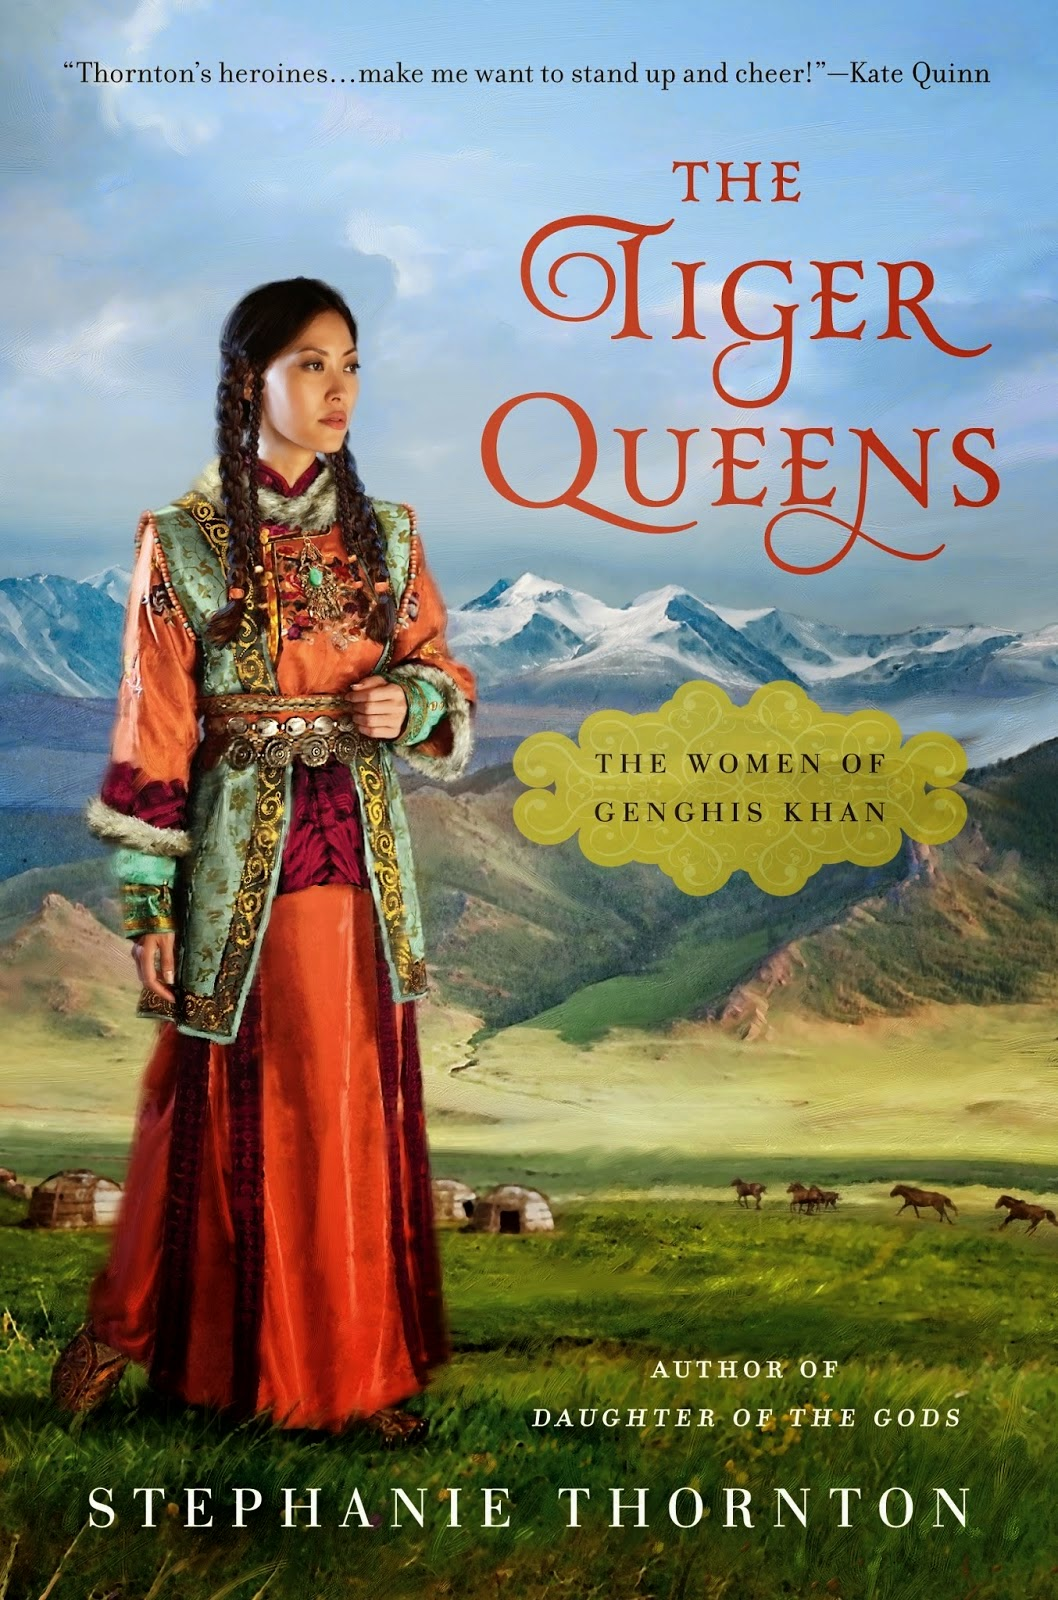 http://www.stuckinbooks.com/2014/10/the-tiger-queens-by-stephanie-thornton.html